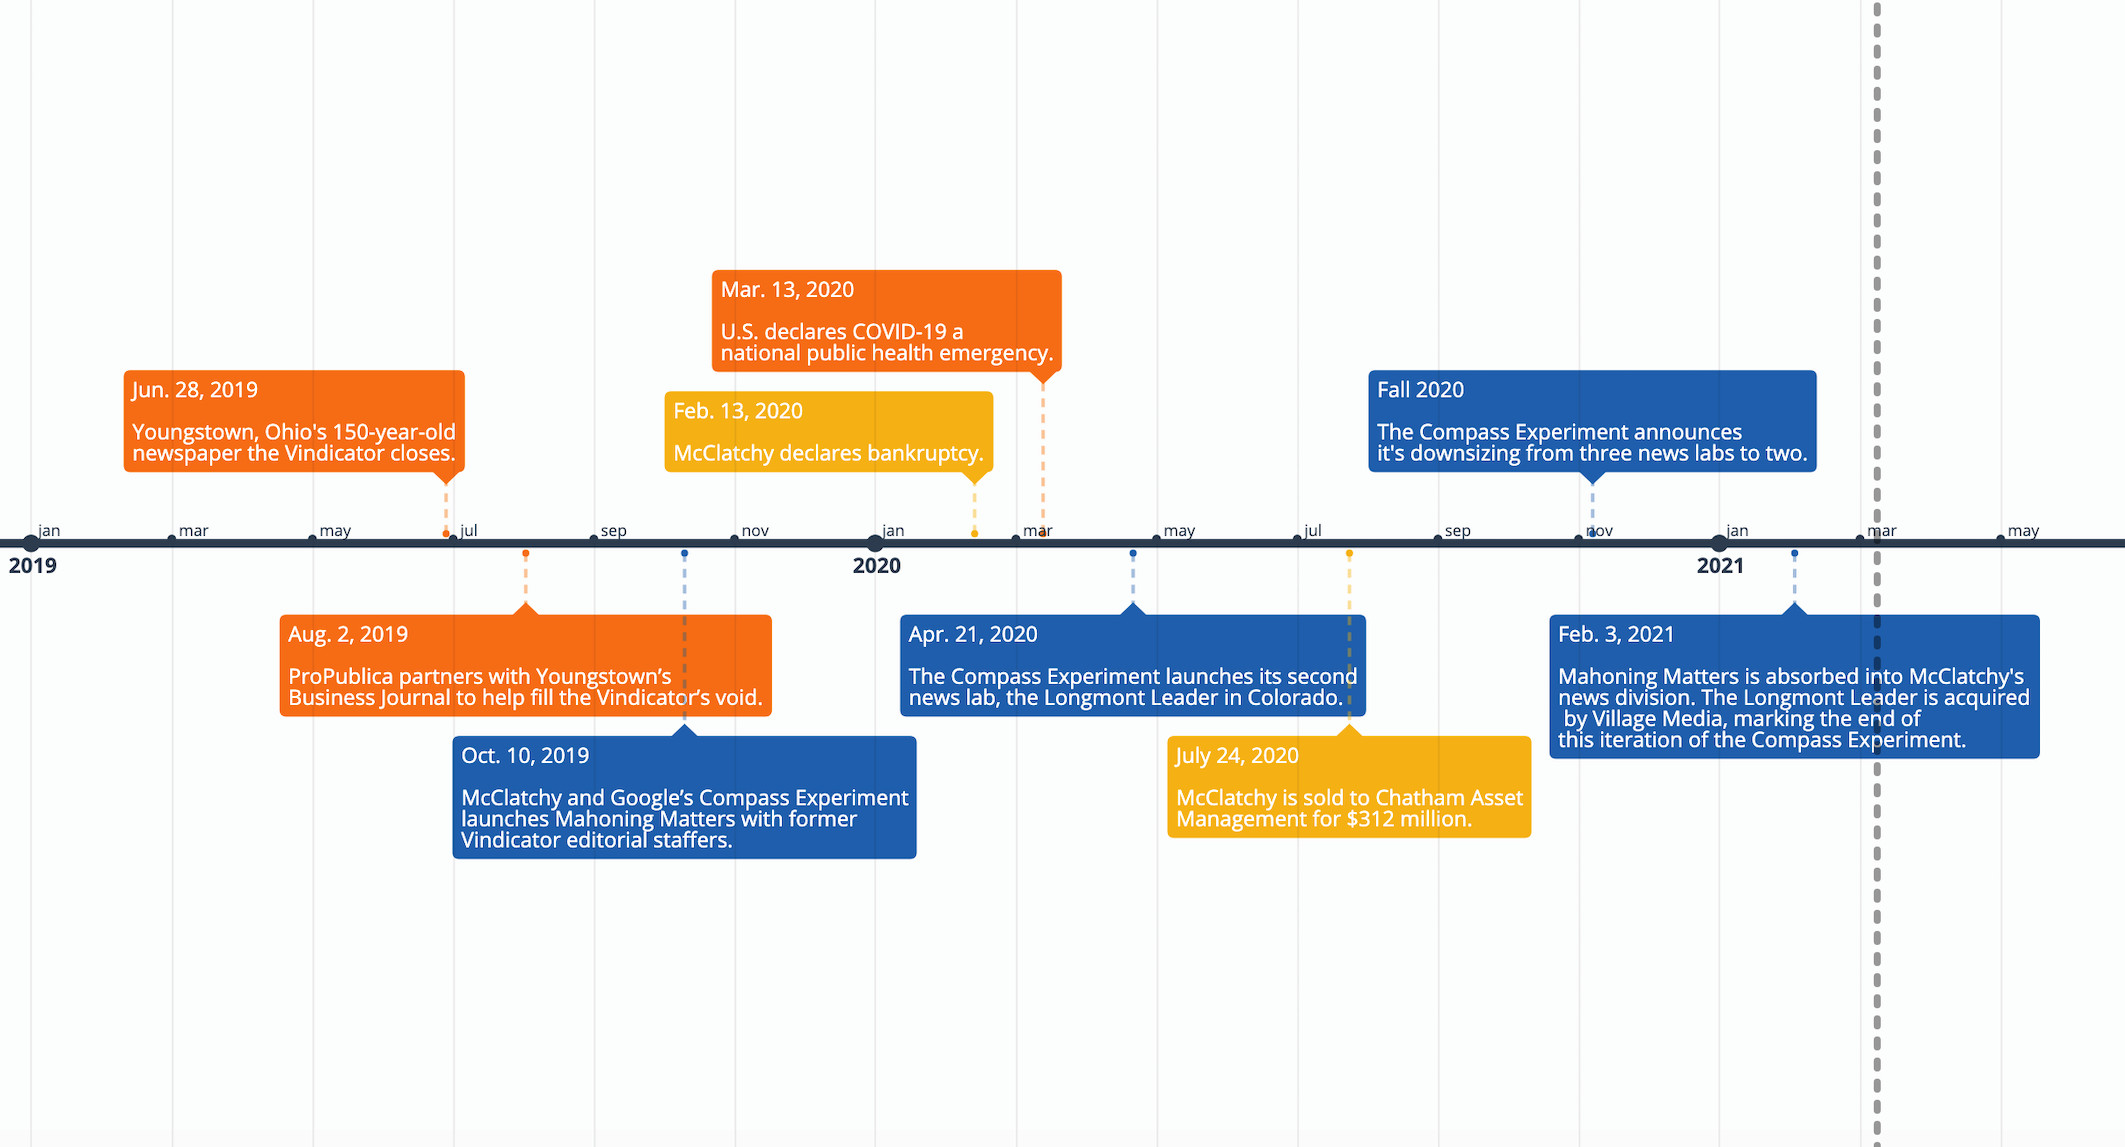 Here's an interactive timeline of the Compass Experiment since its inception in 2019. (Source: Gabby Miller, Tow Center)